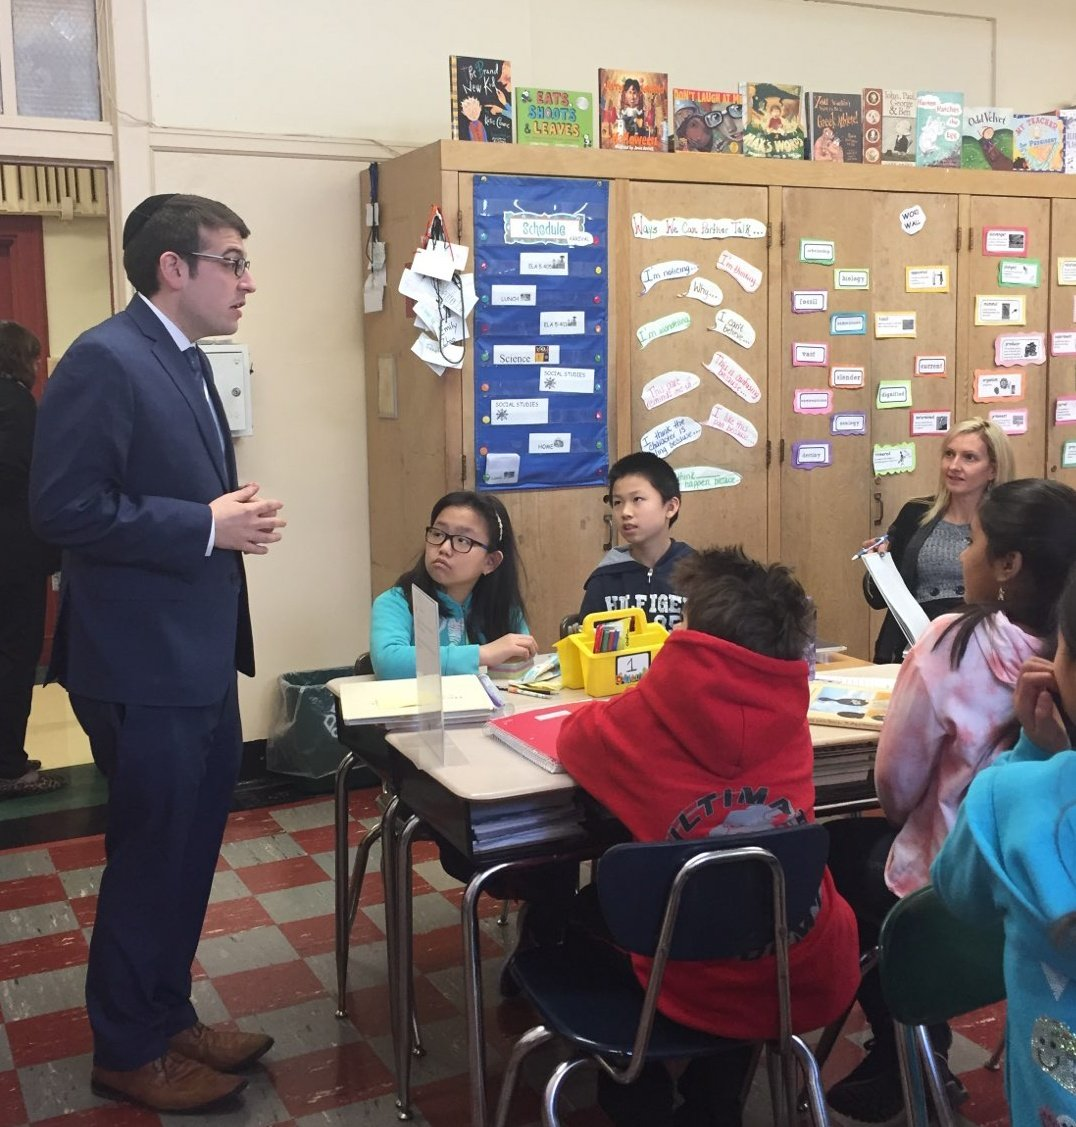 Assemblymember Rosenthal spoke with future leaders at P.S. 129 about the importance of being active citizens